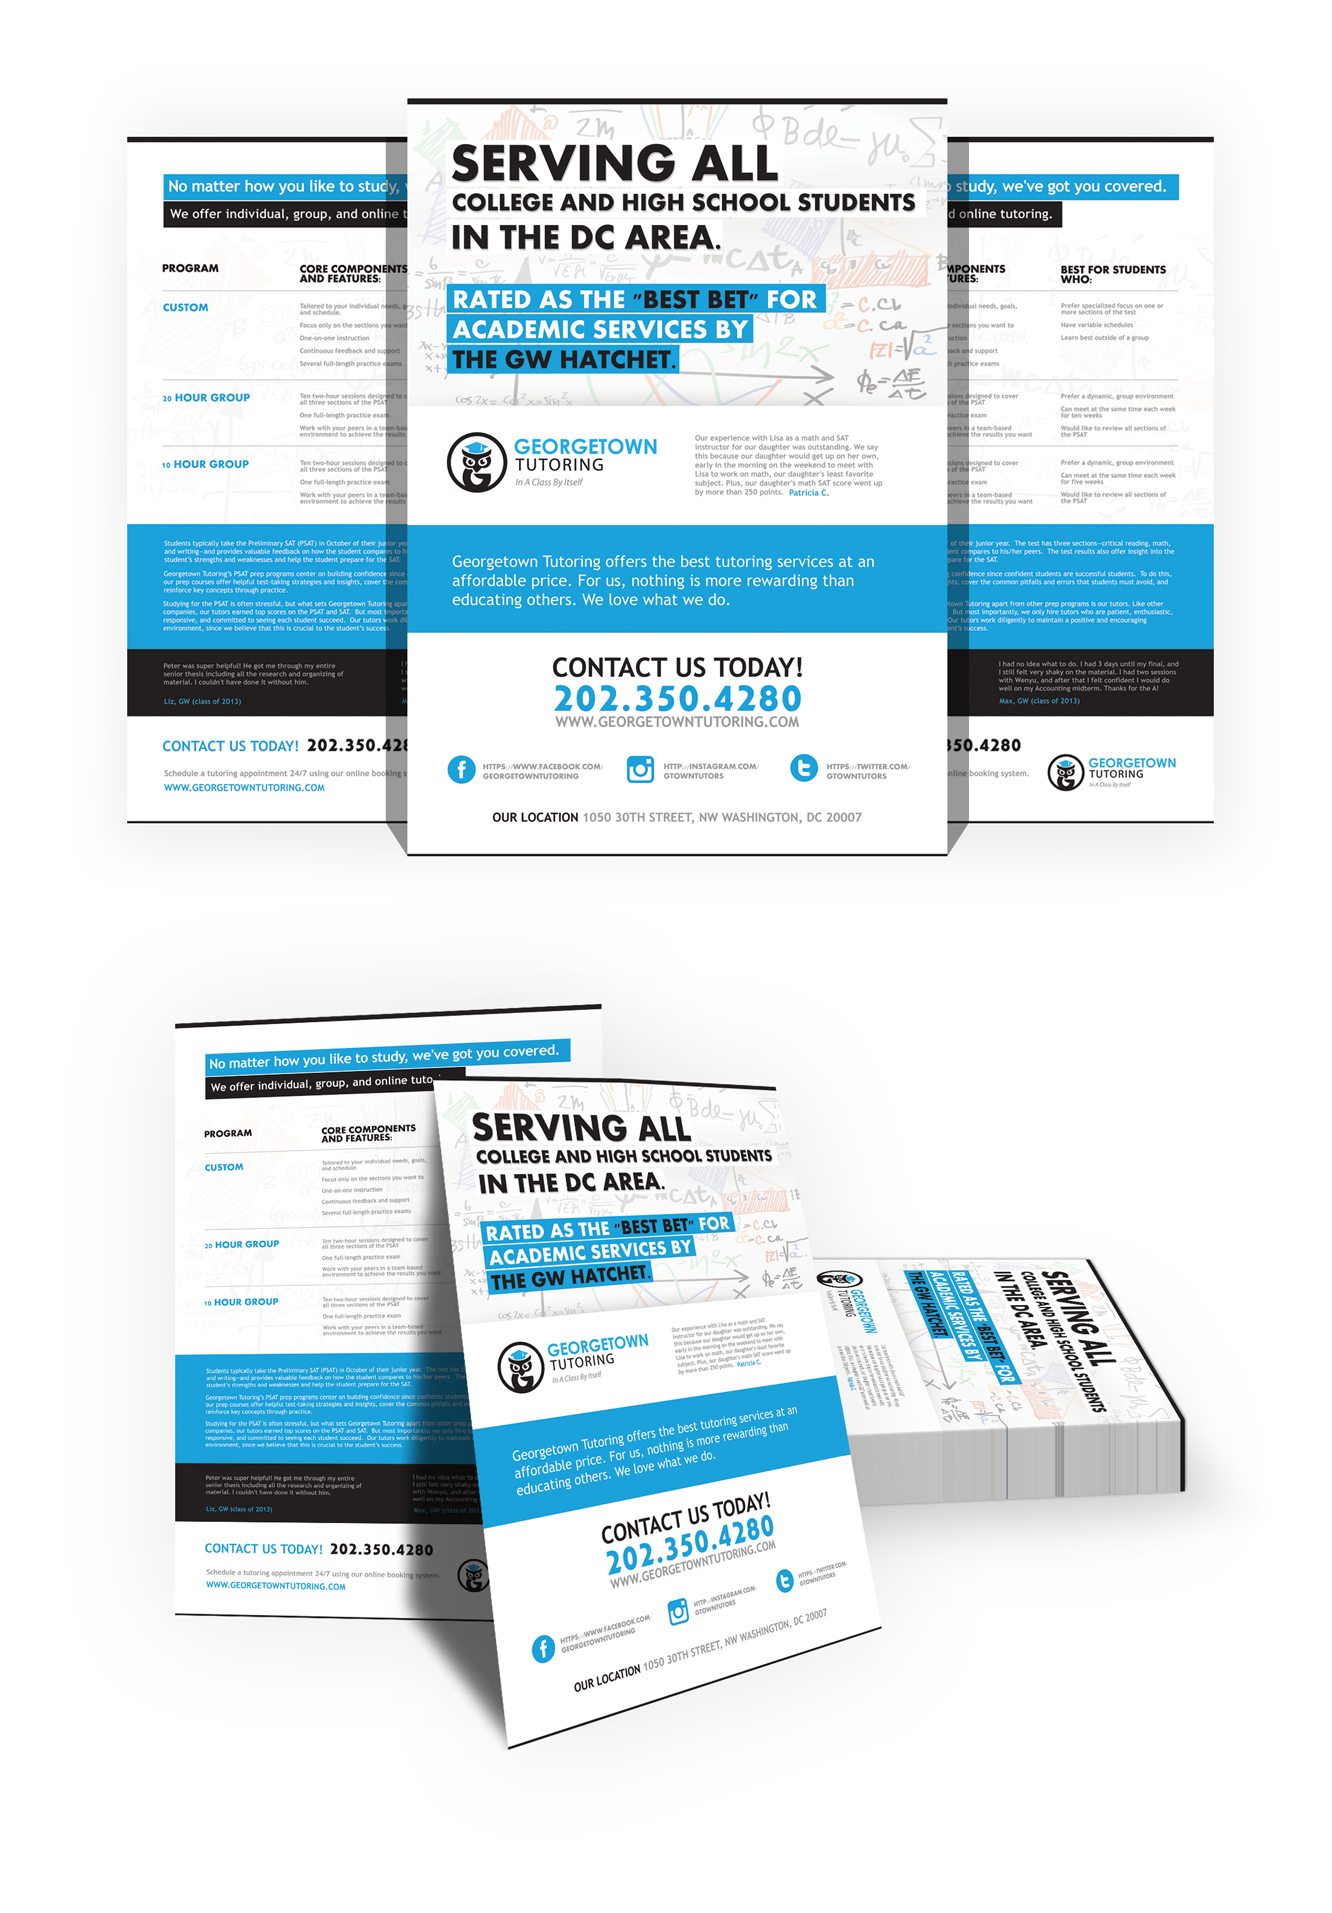 Georgetown Tutoring | Flyer Design